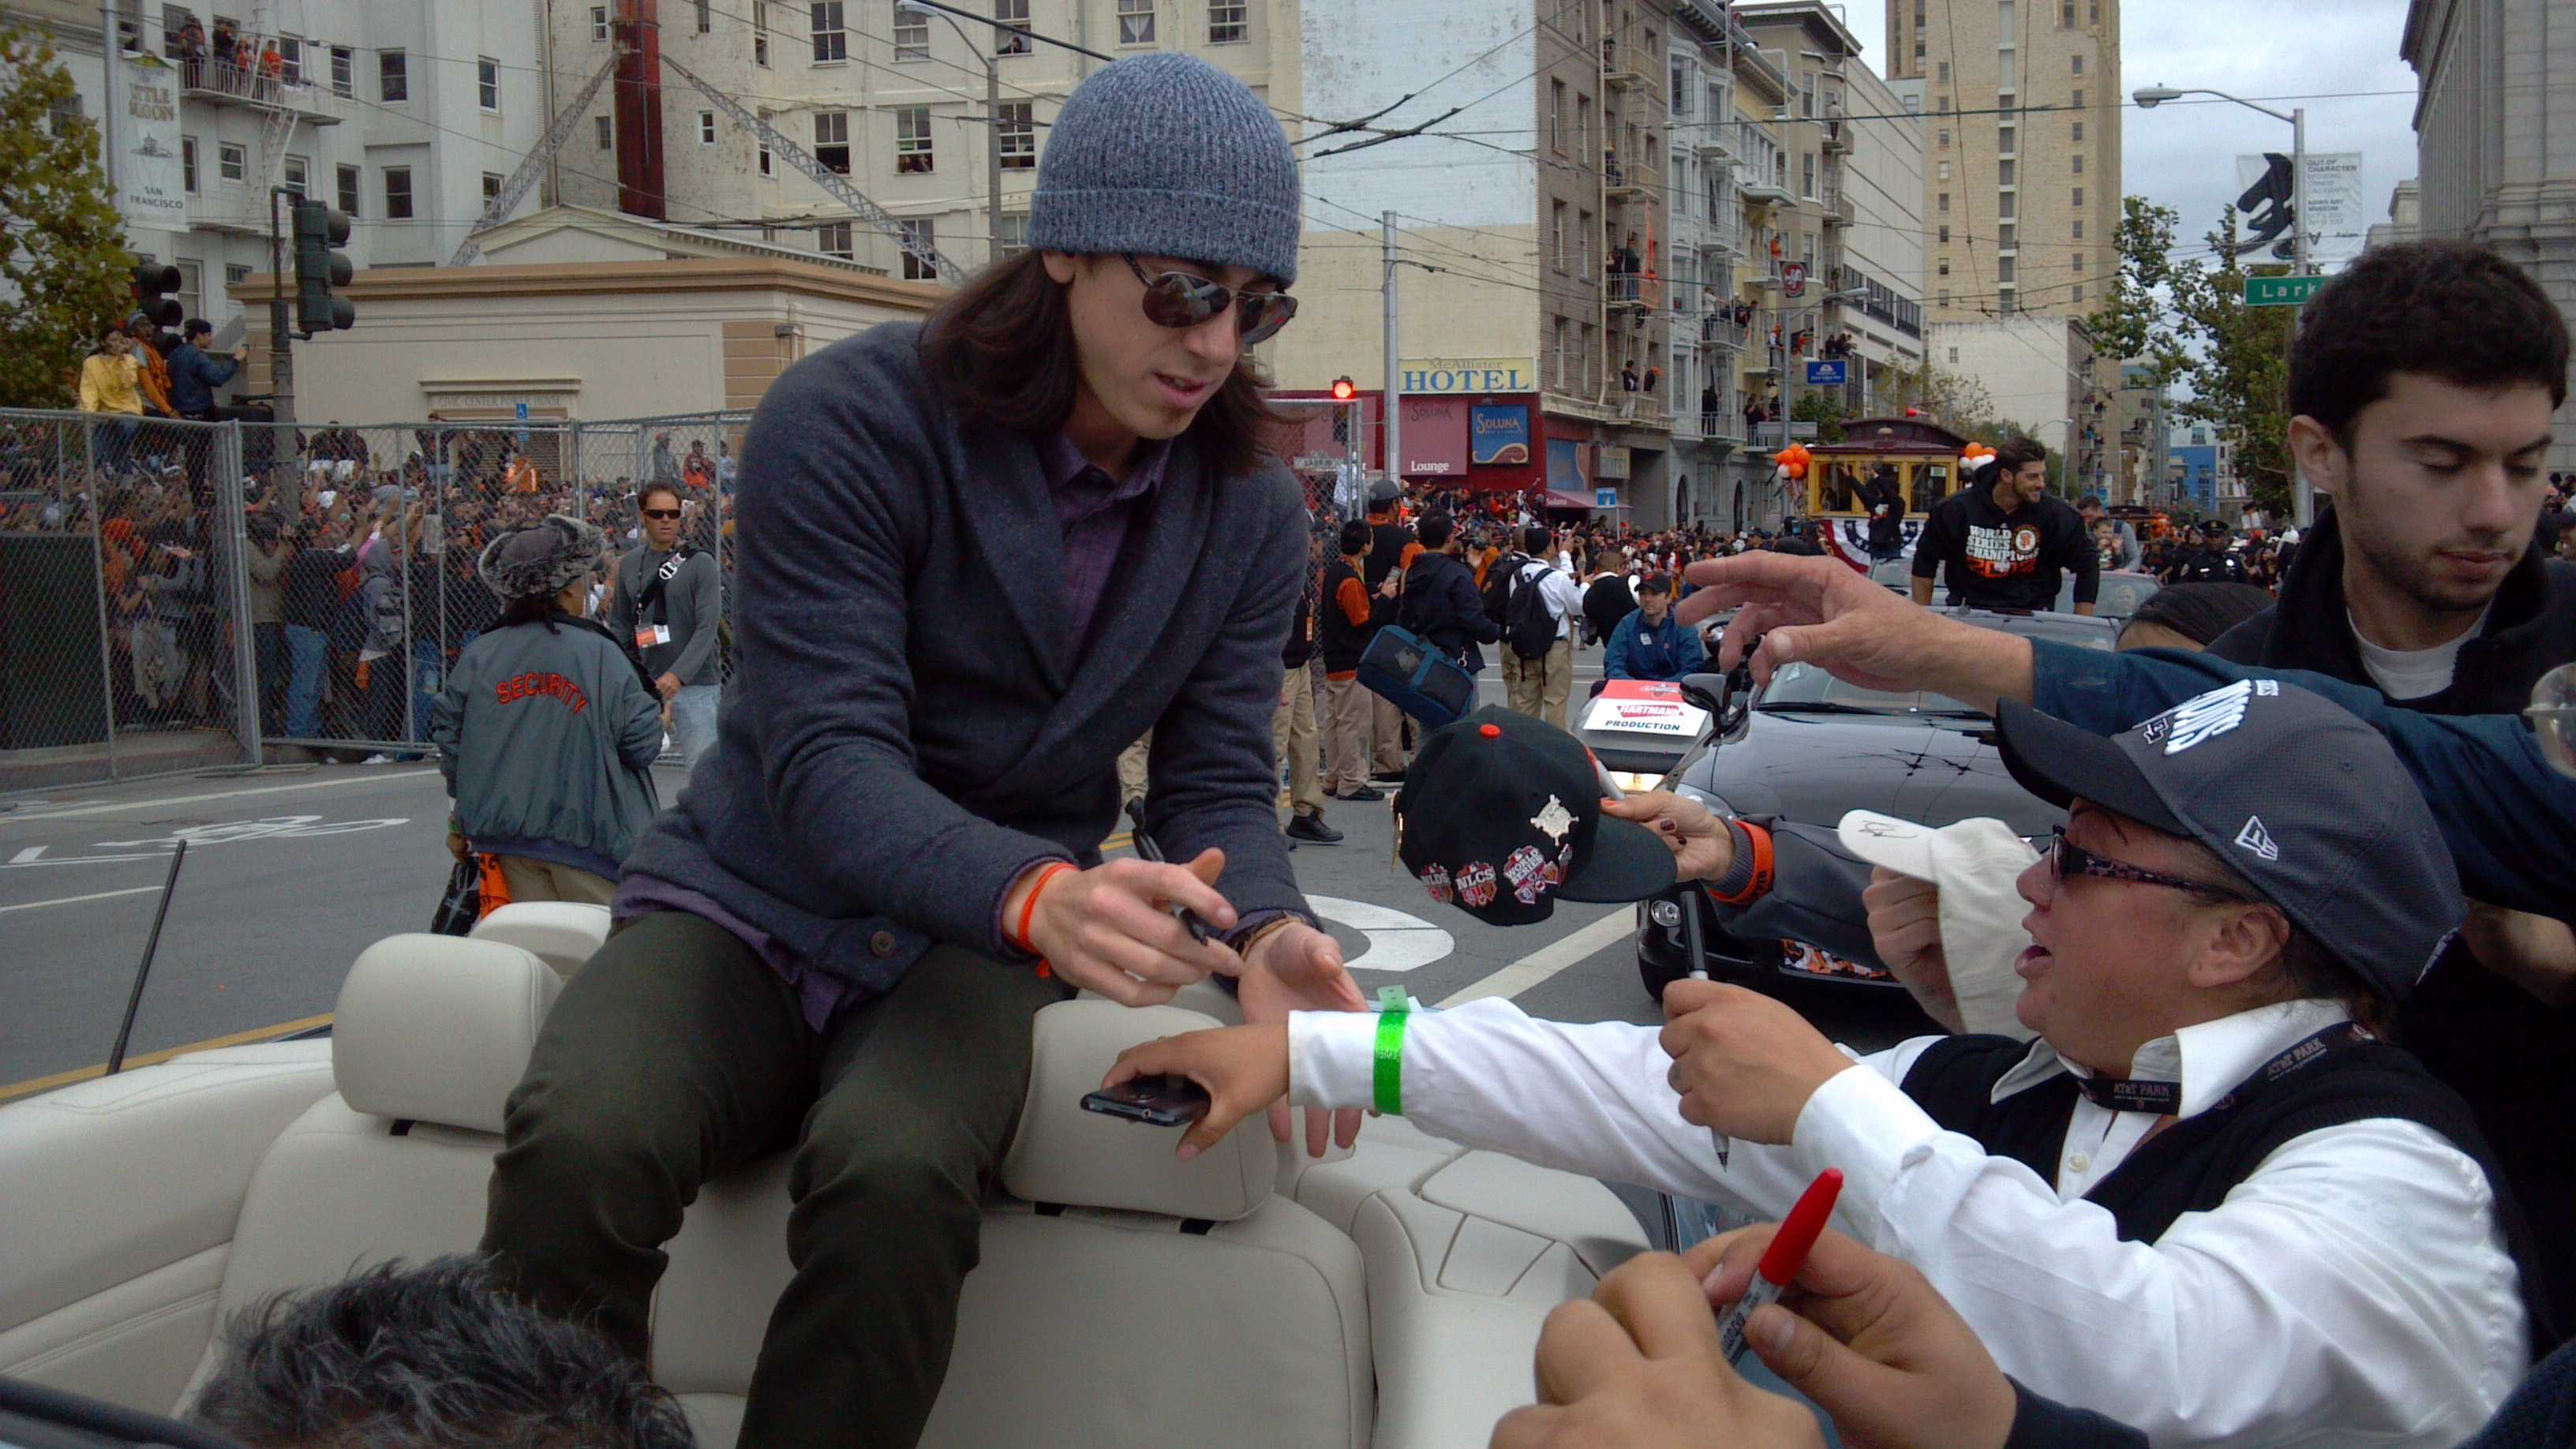 Tim Lincecum signs autographs during a parade Wednesday.